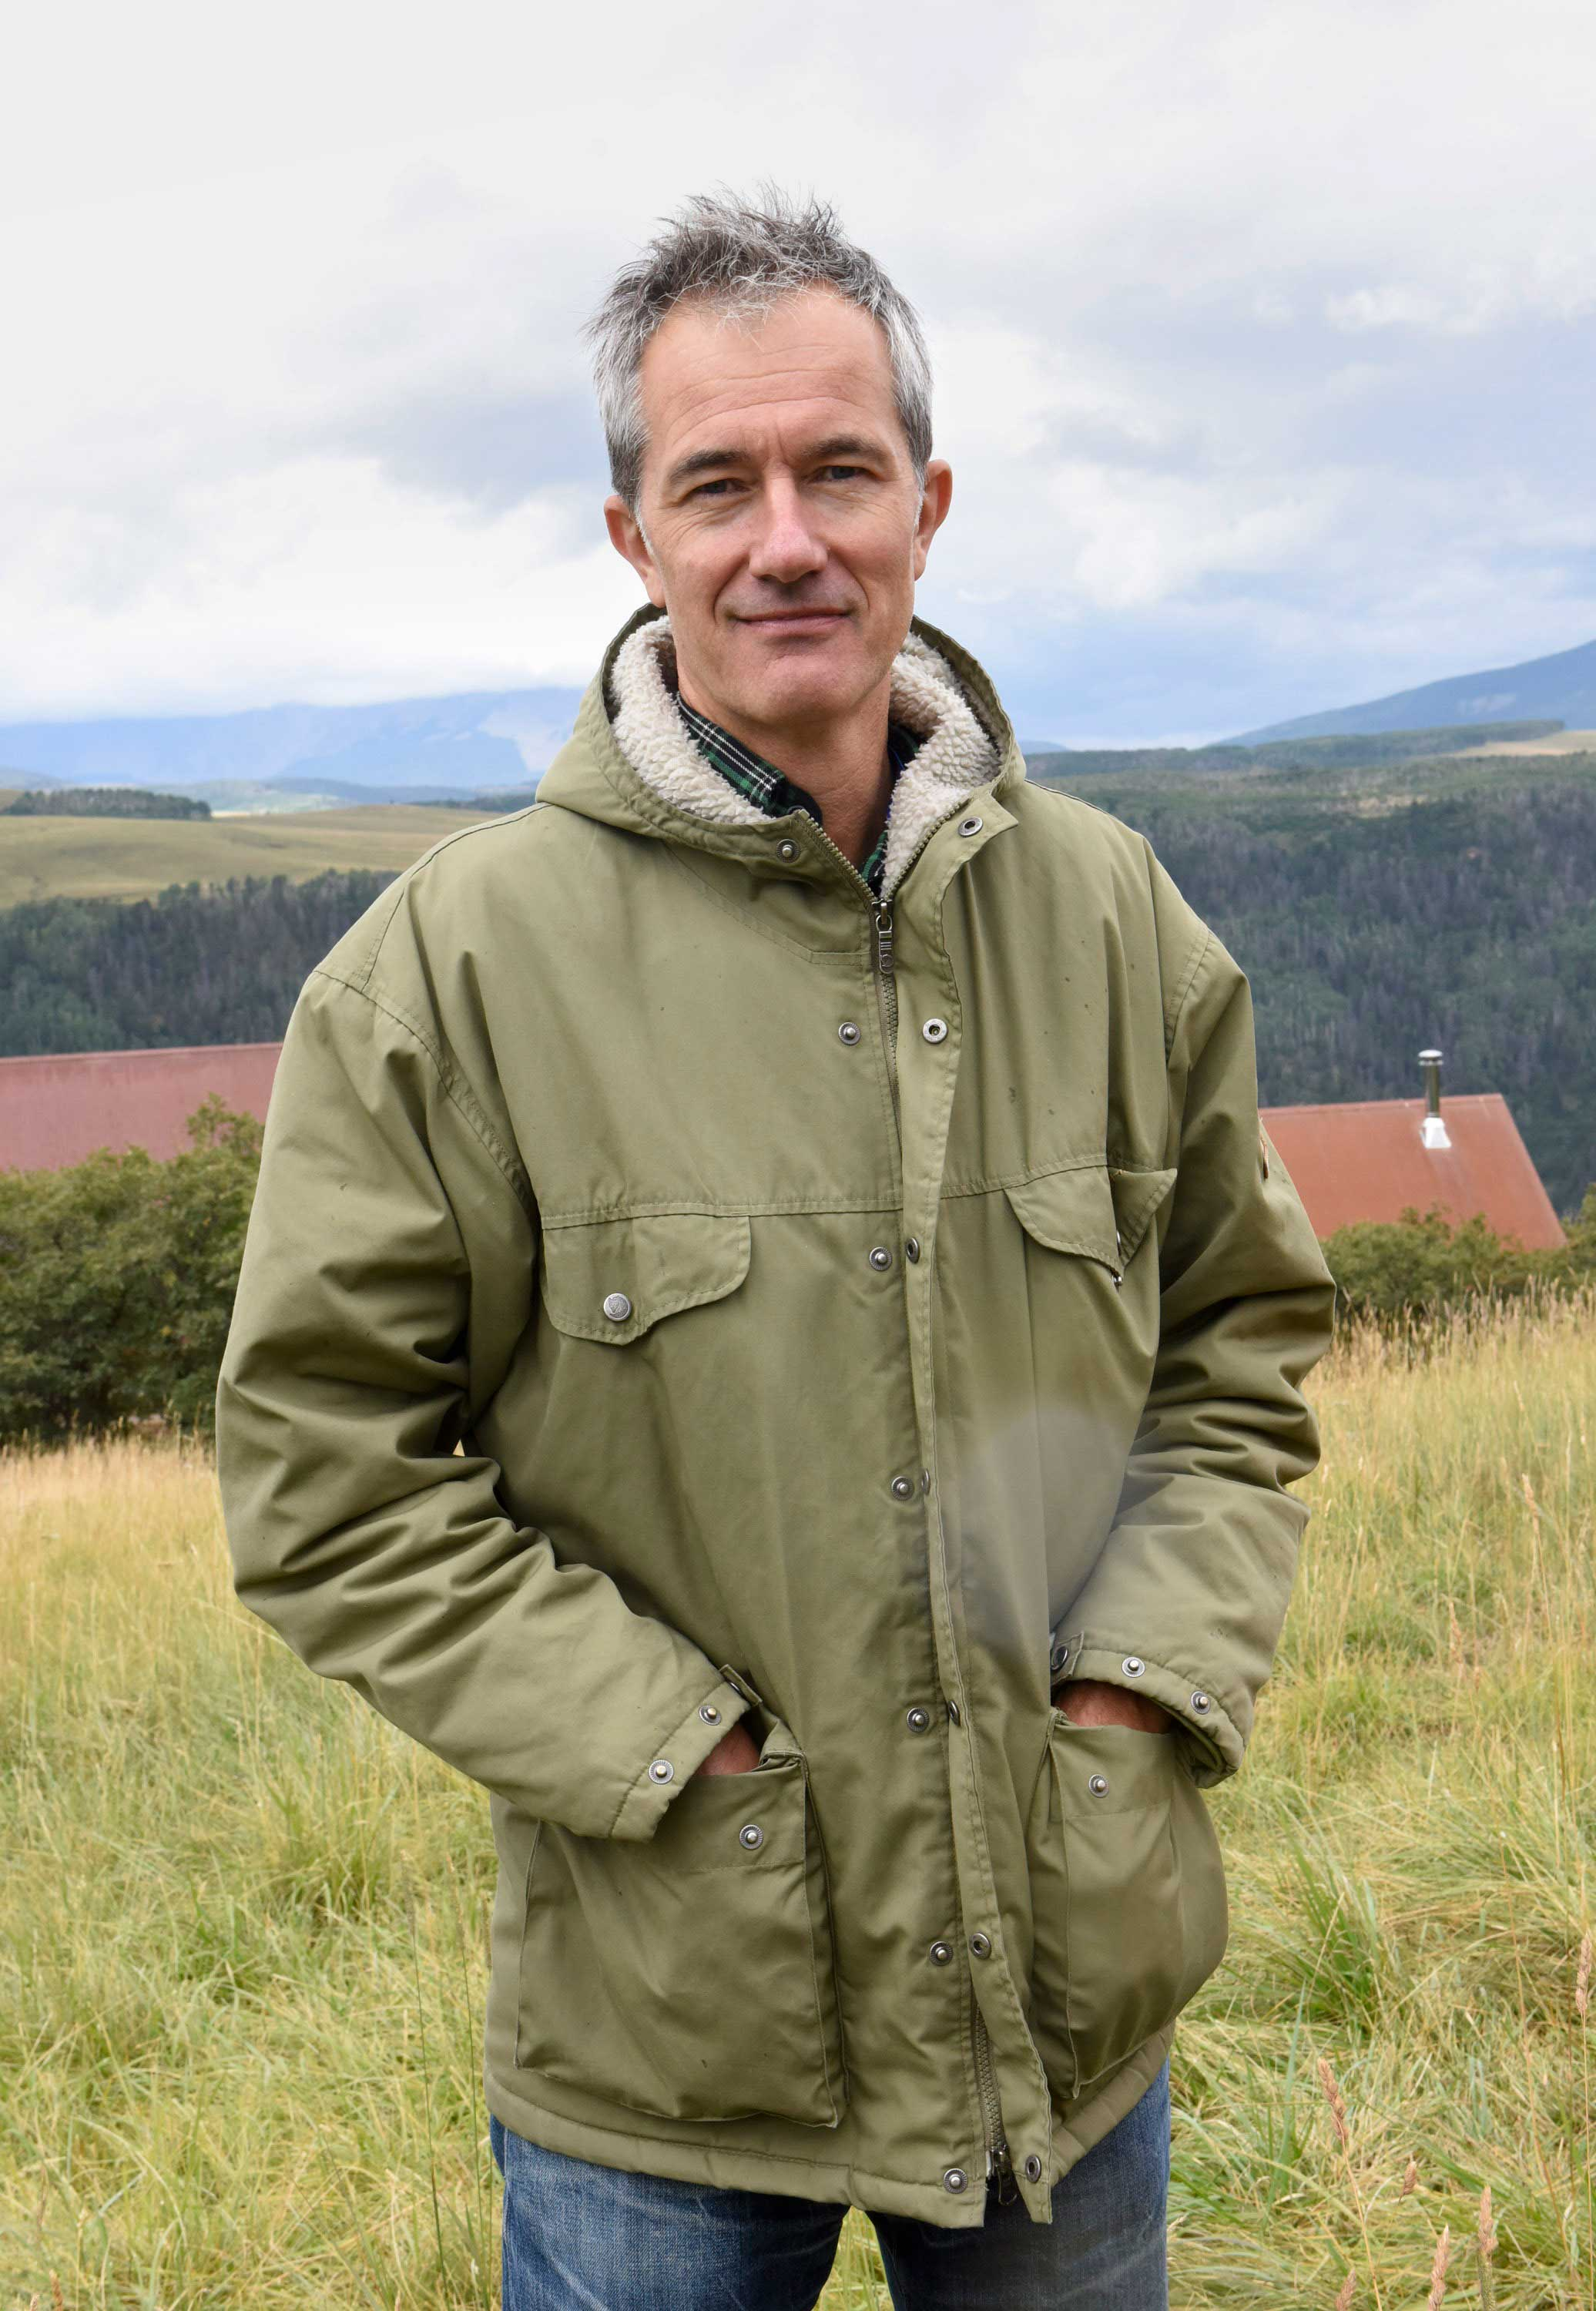 The writer Geoff Dyer finds trouble in paradise